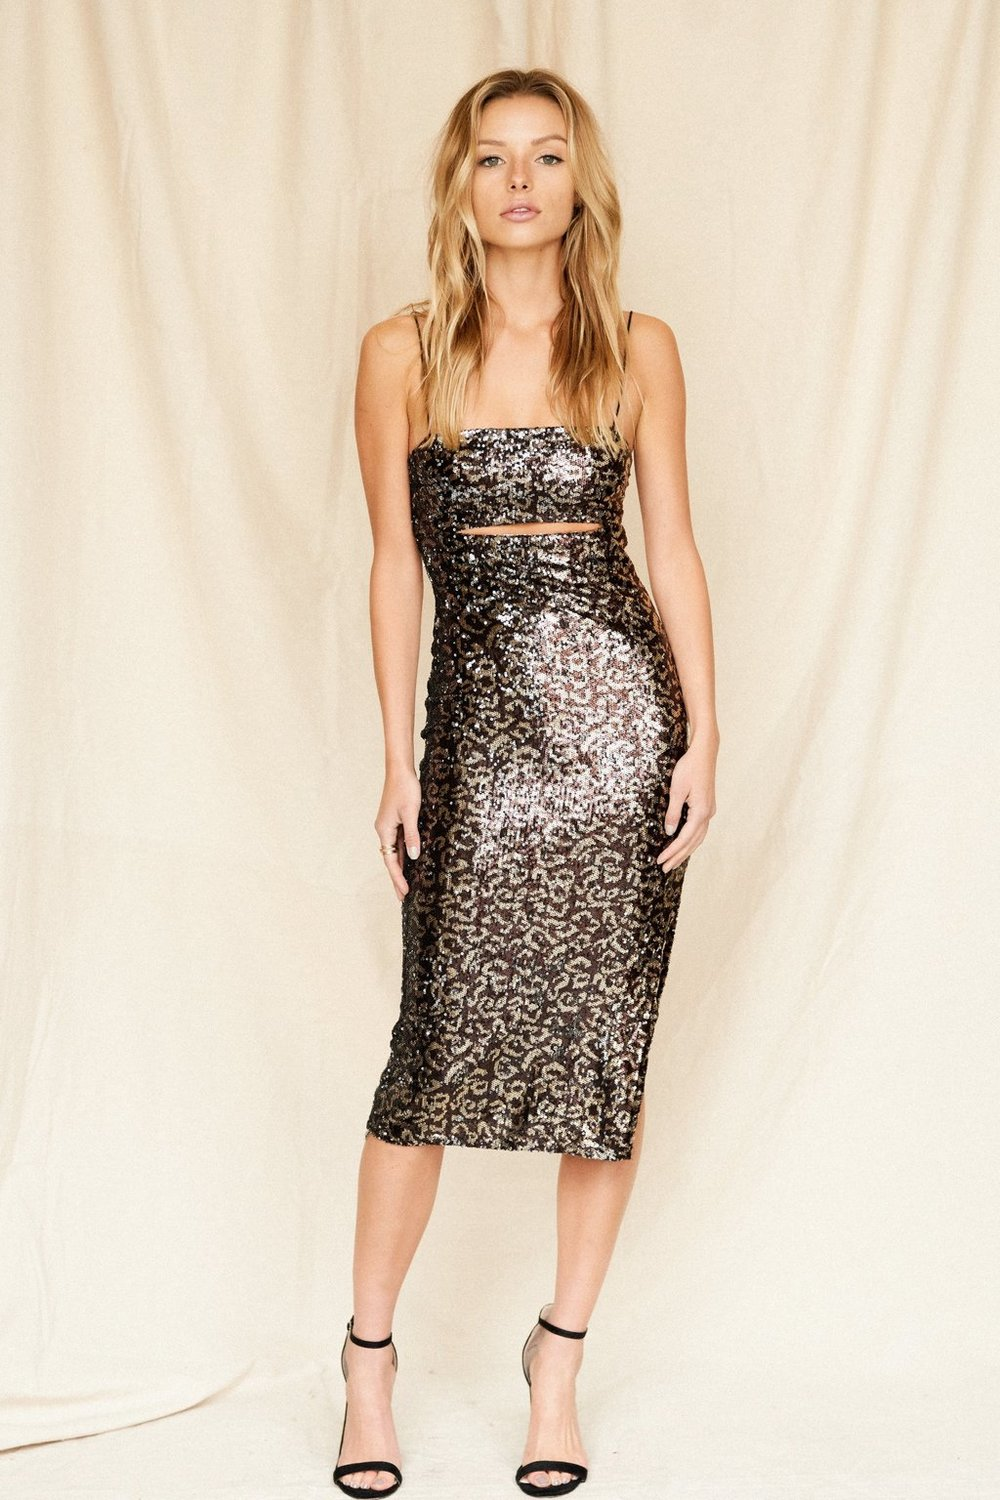 Celine Leopard Sequin Dress -12th Tribe - There is no better feeling than confidence and wearing the Celine Leopard Sequin Dress will definitely have you feeling that way. A sexy and tight fitted dress that flirts its way to the dance floor. You'll feel the best you've ever felt in this hot number.